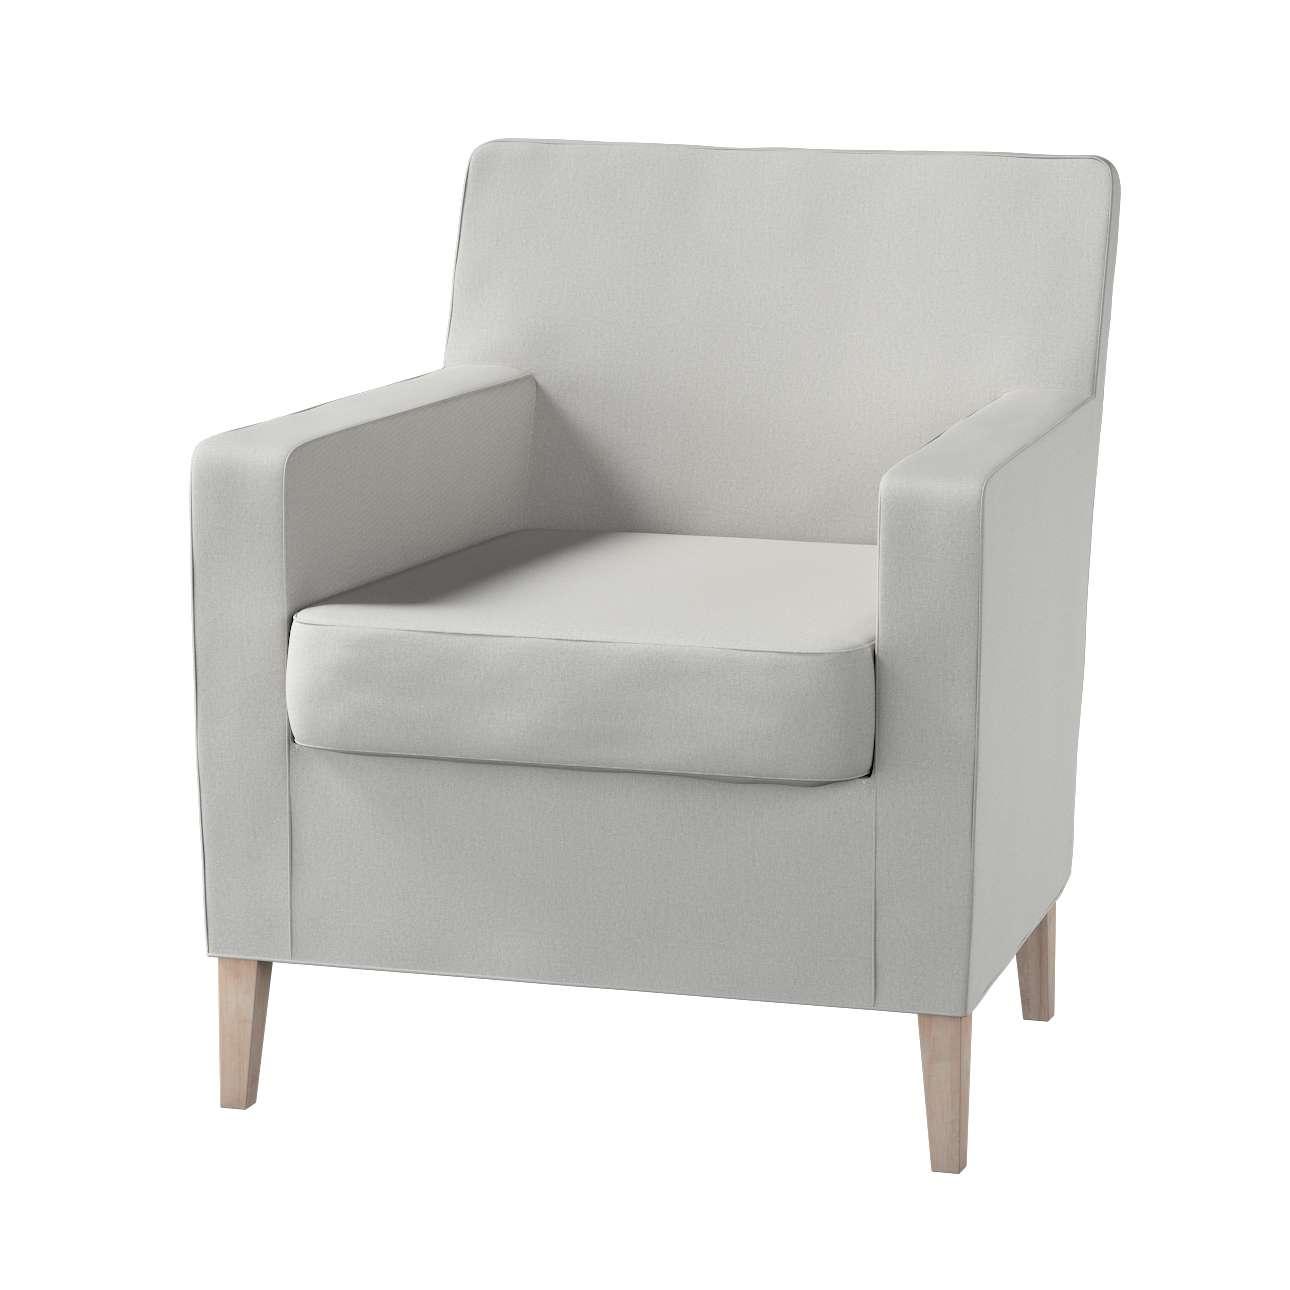 Karlstad tall chair cover Karlstad armchair cover in collection Etna, fabric: 705-90